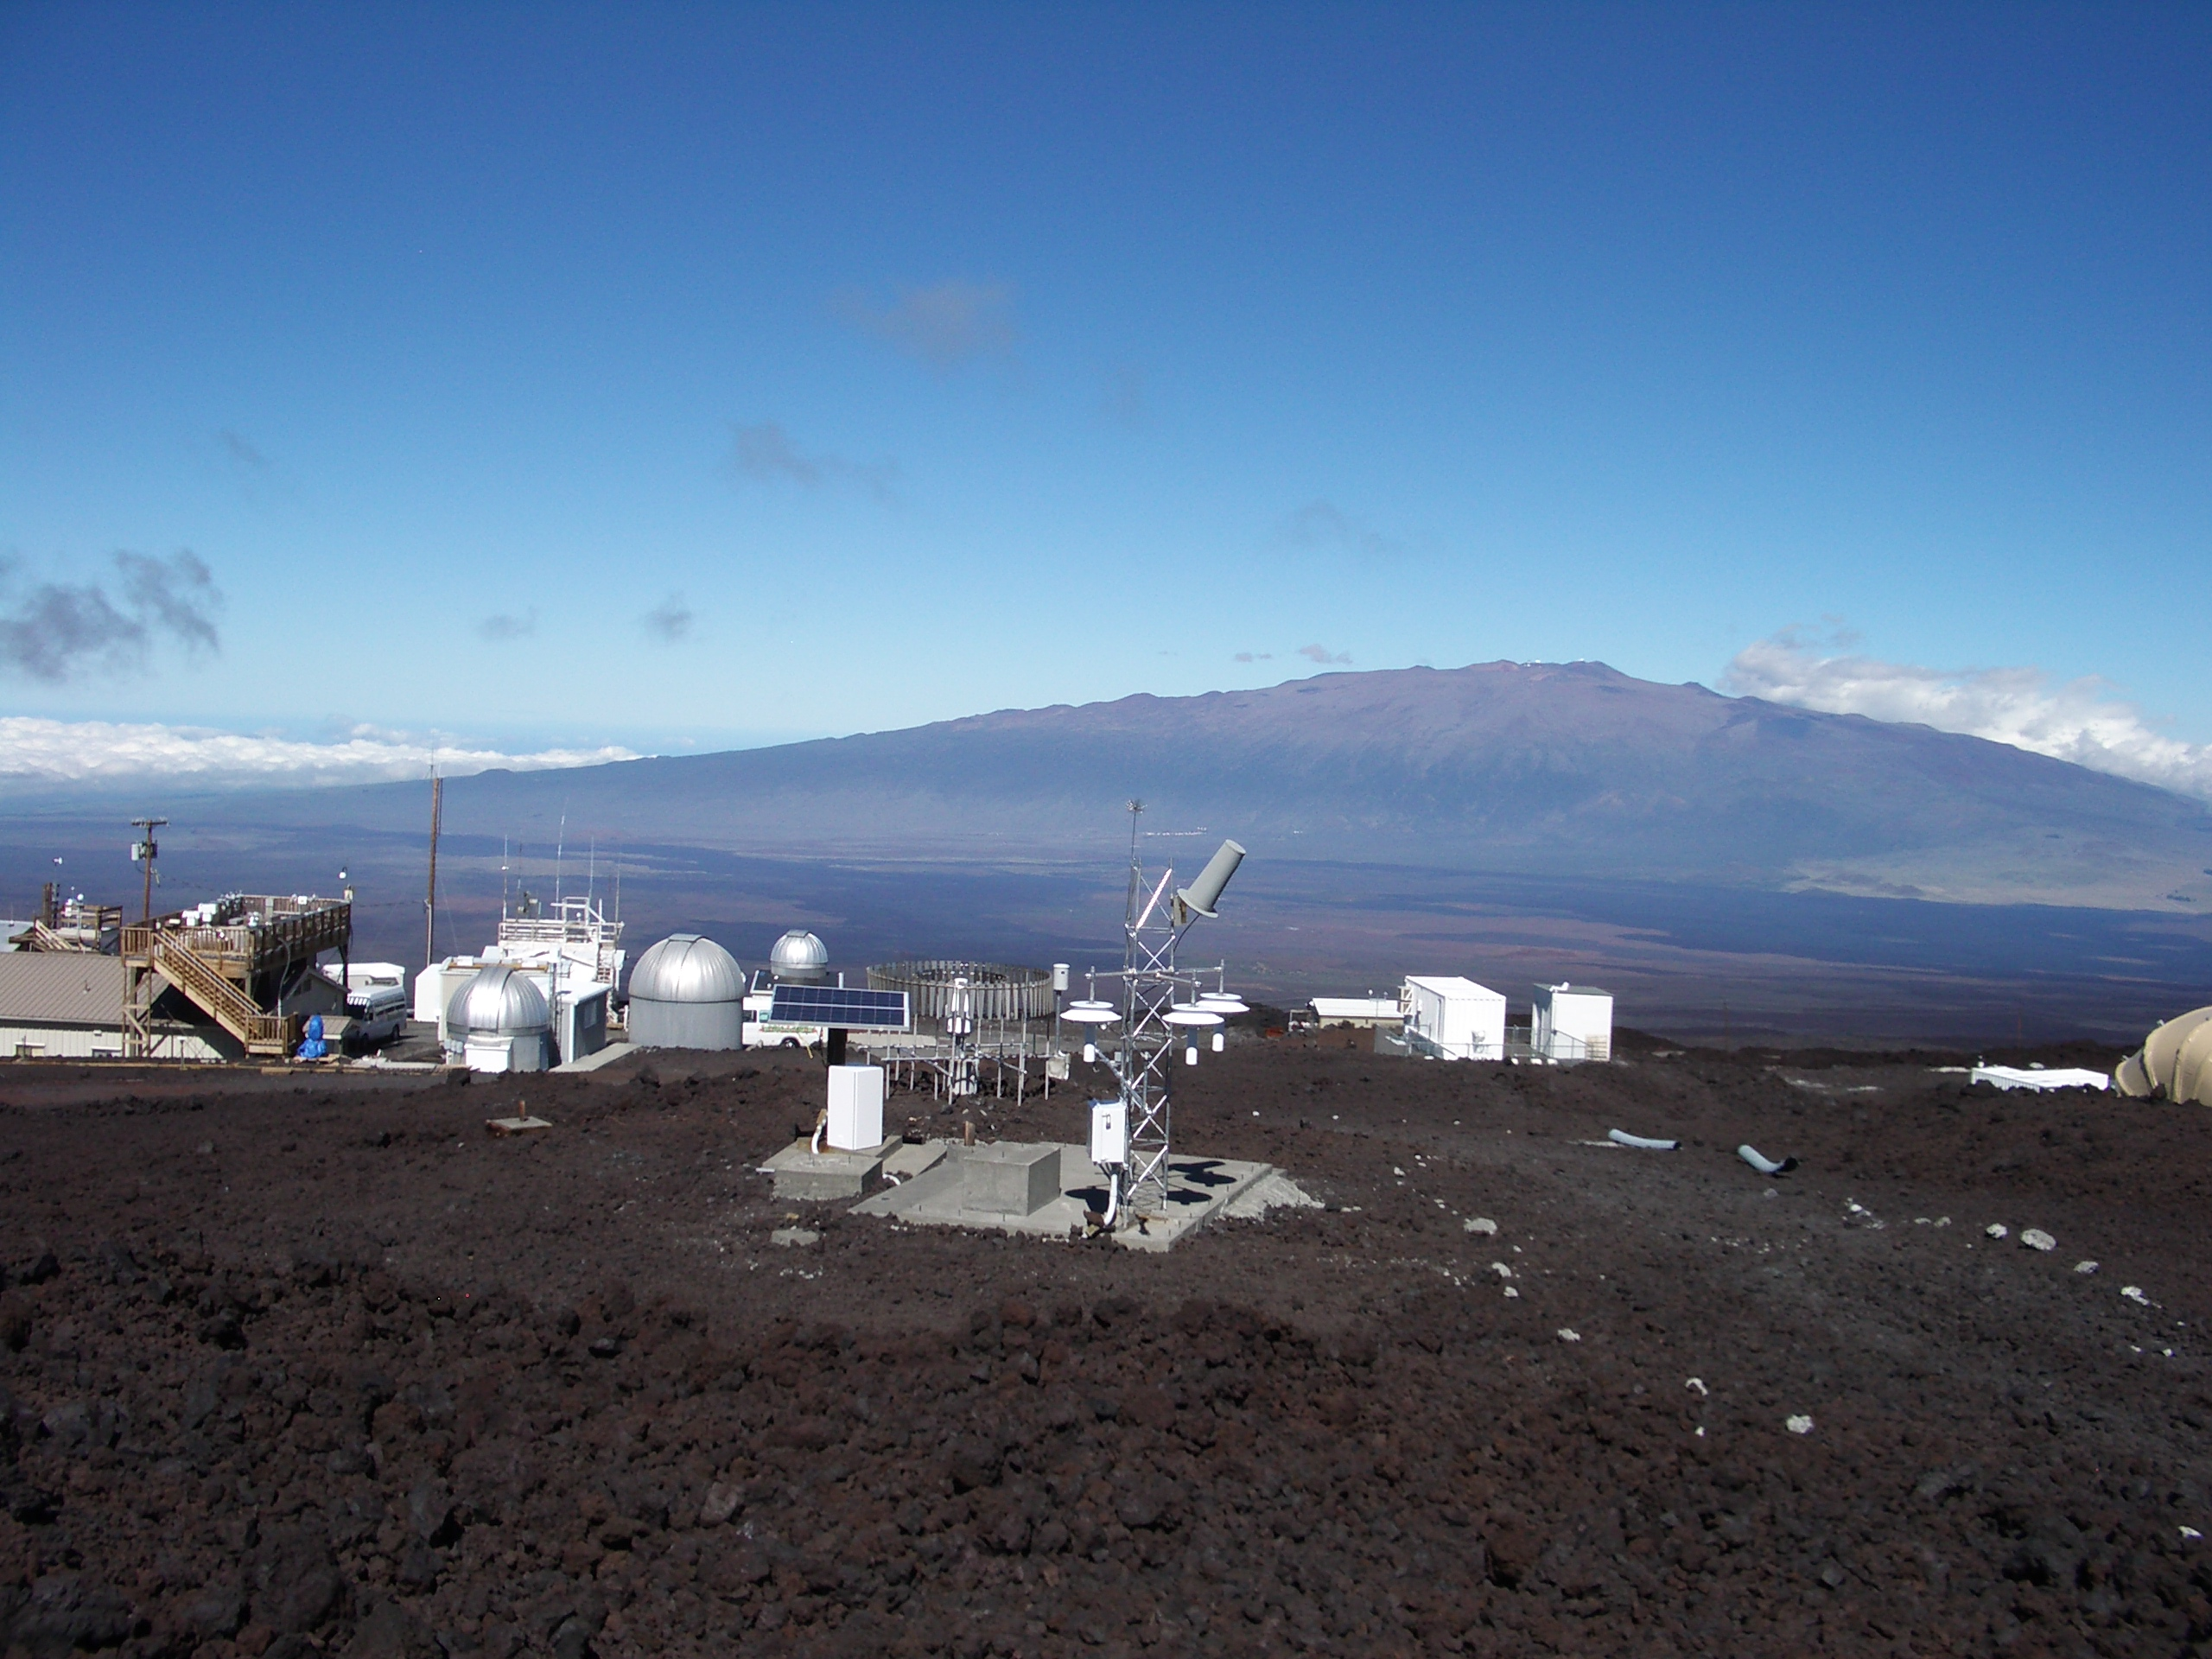 U.S. Climate Reference Network climate observing station on Mauna Loa in Hawaii  (Mauna Kea in the background).